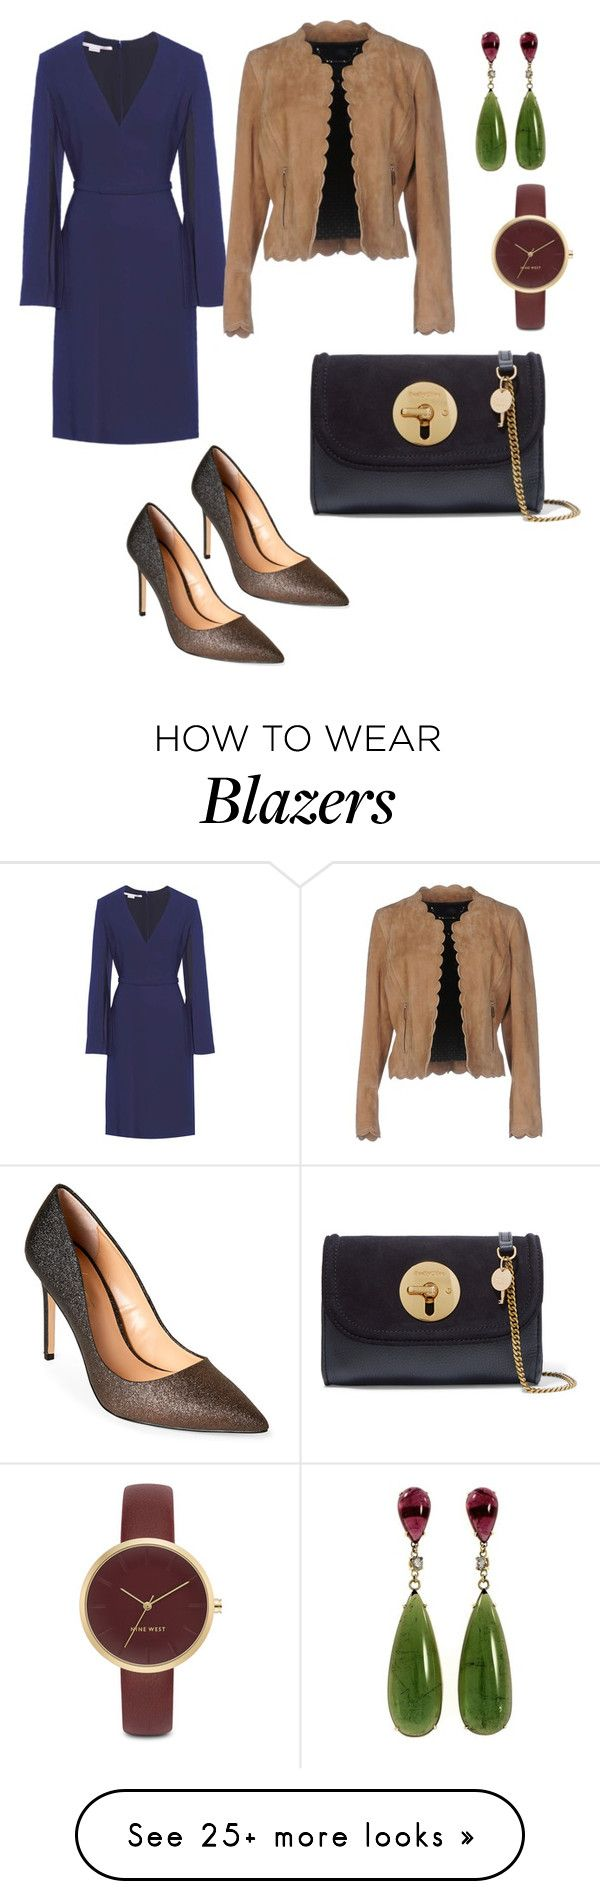 """""""Blue dress so chic"""" by jalepe on Polyvore featuring STELLA McCARTNEY, Barbara Bui, Daya, Nine West and See by Chloé"""